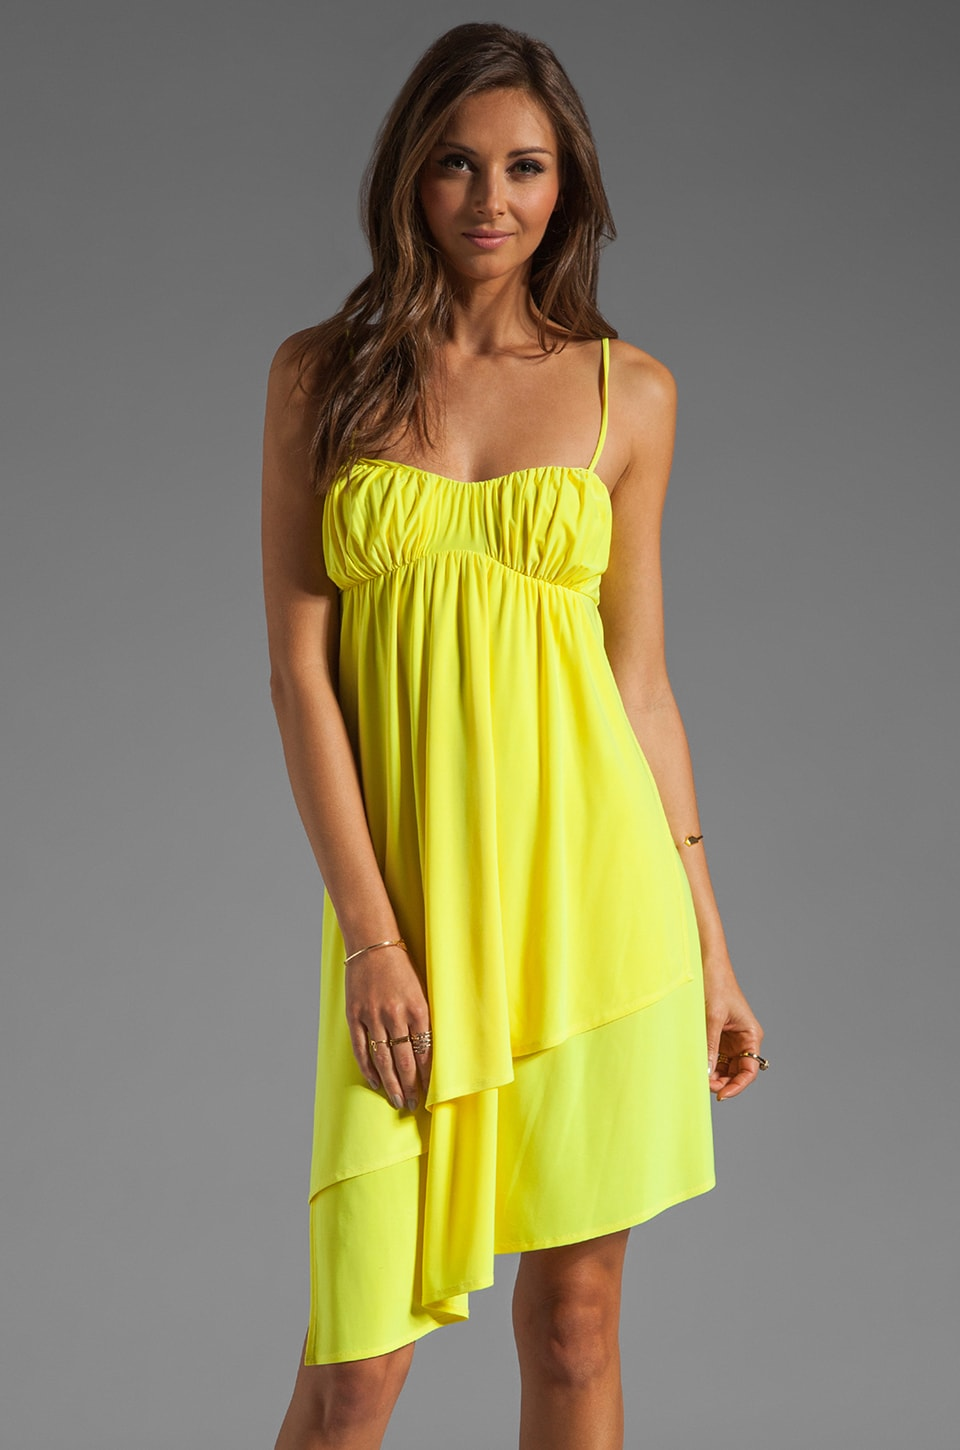 Susana Monaco Matte Knit String Dress in Glow